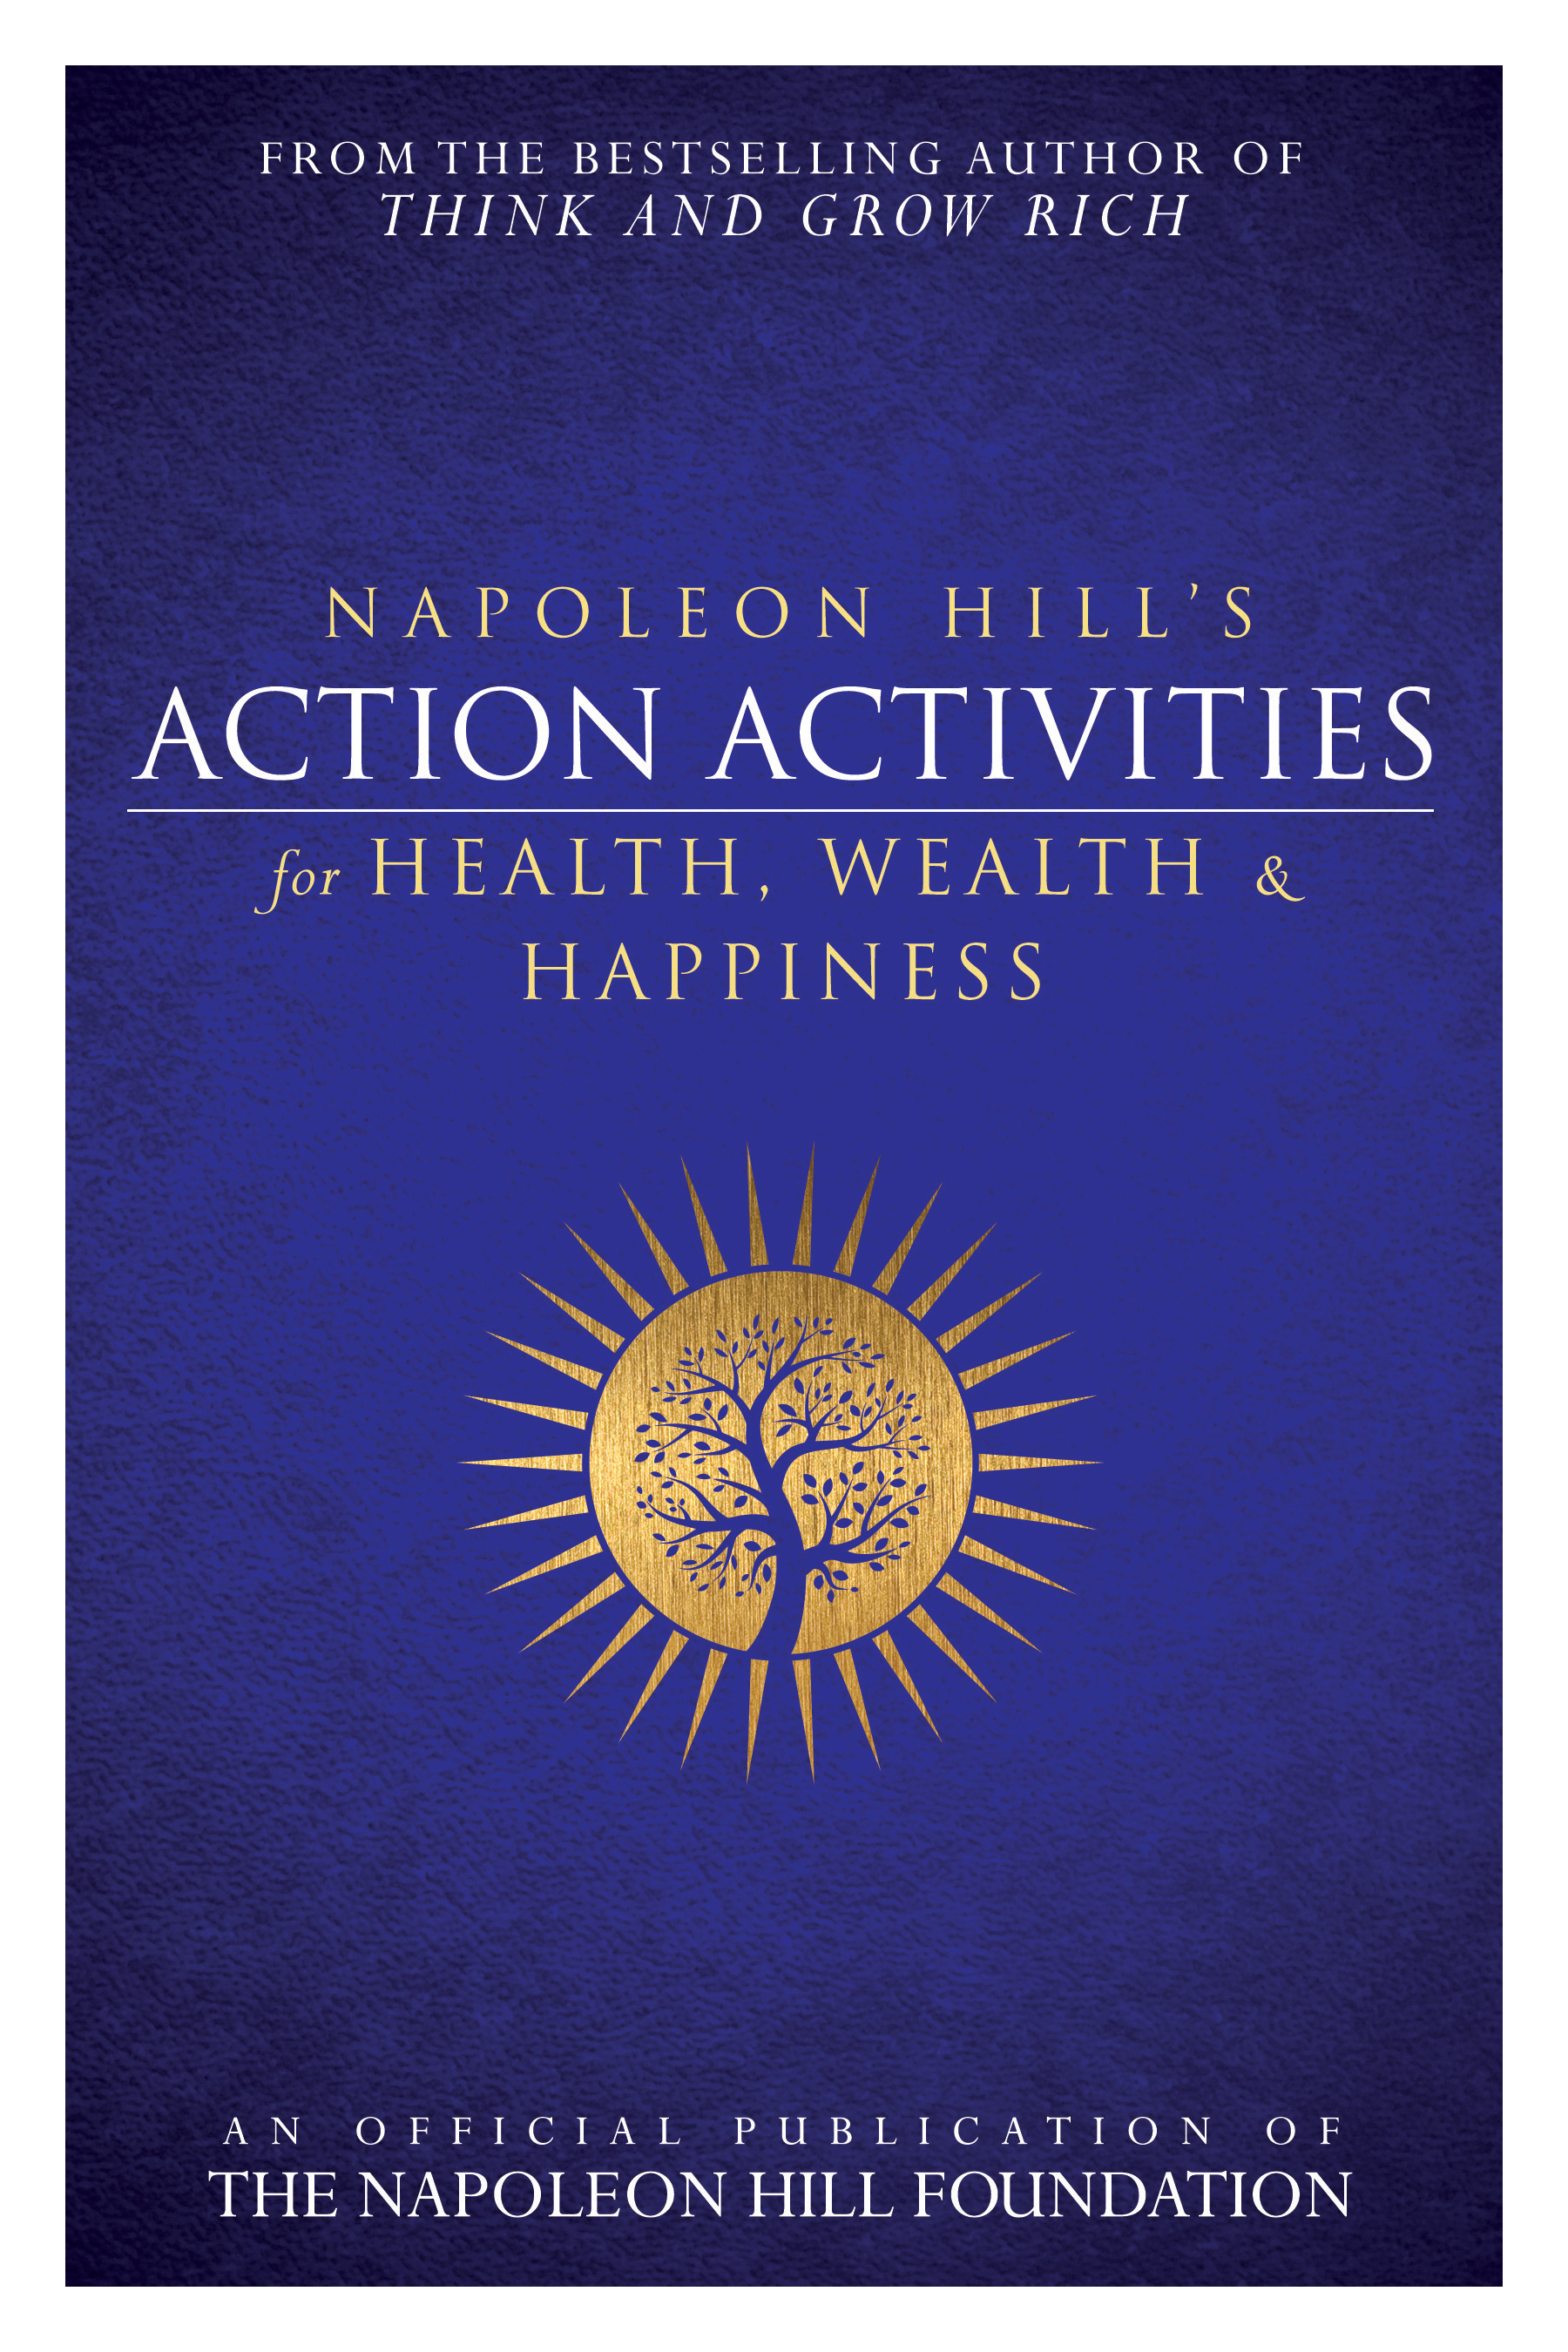 Napoleon Hill's Action Activities.jpg